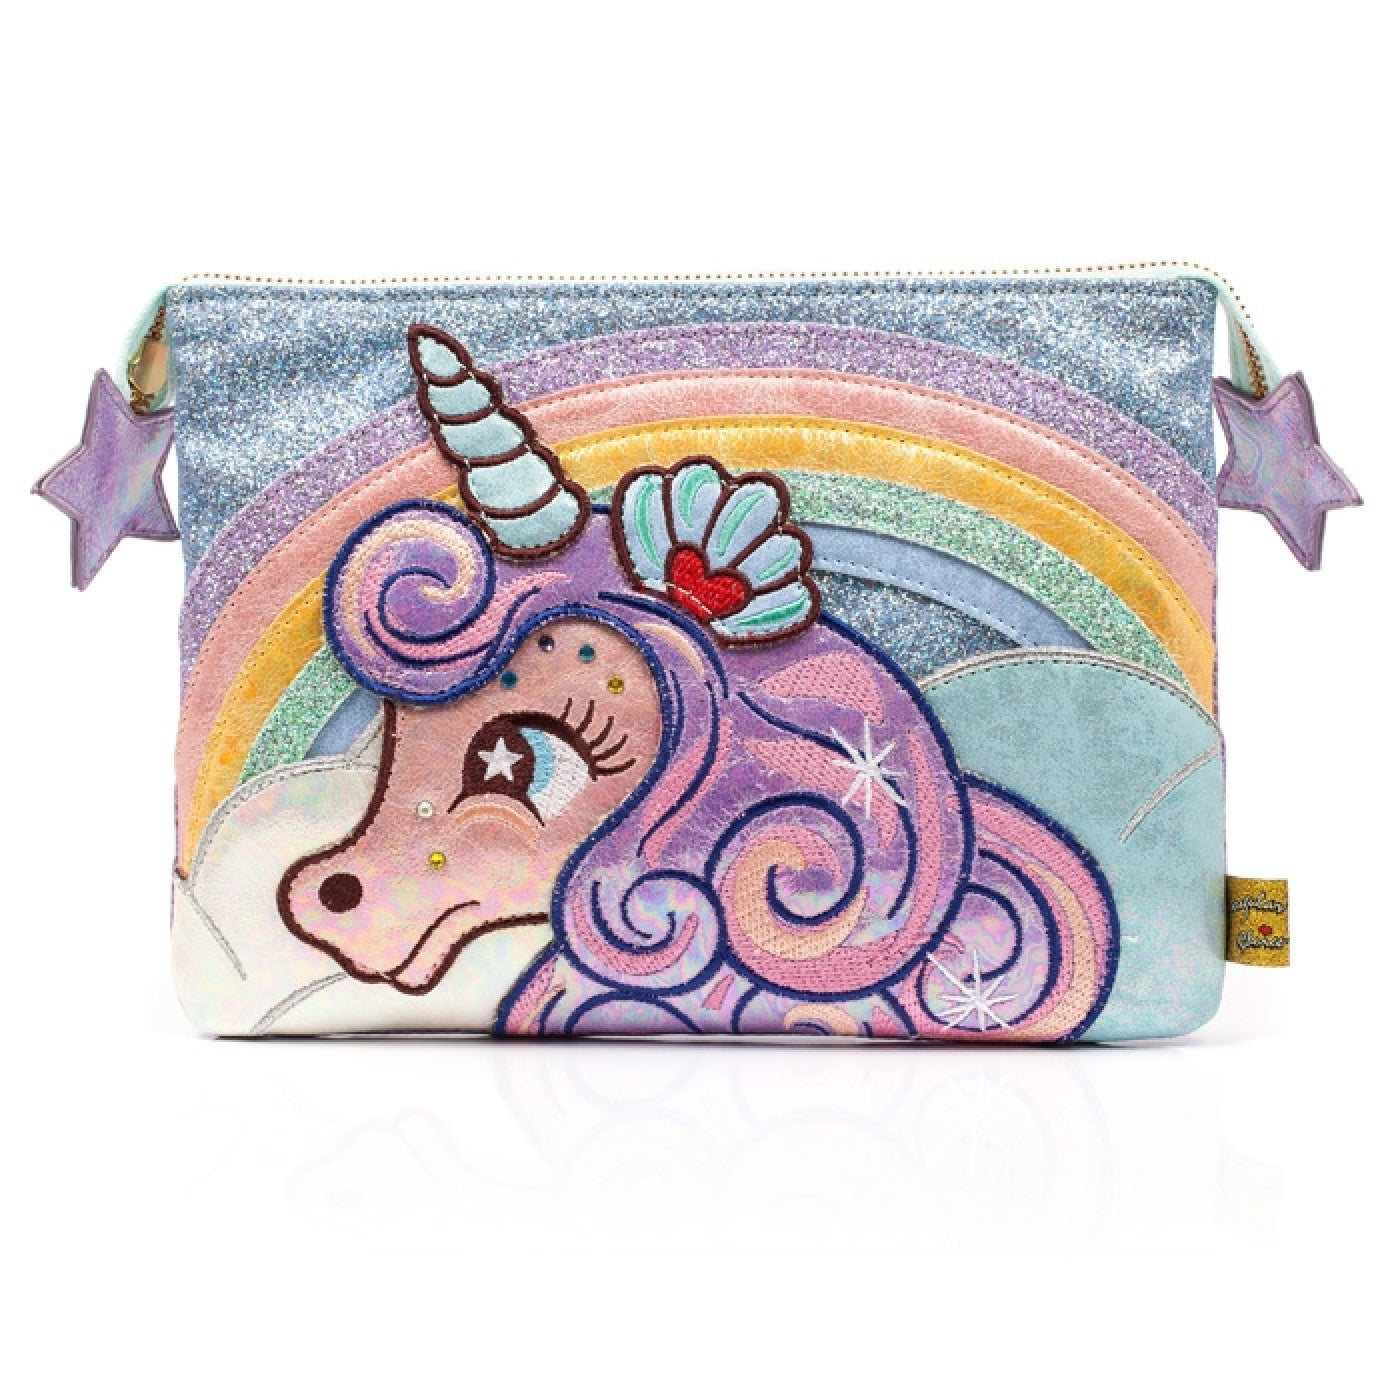 Lady Daisy Pouch